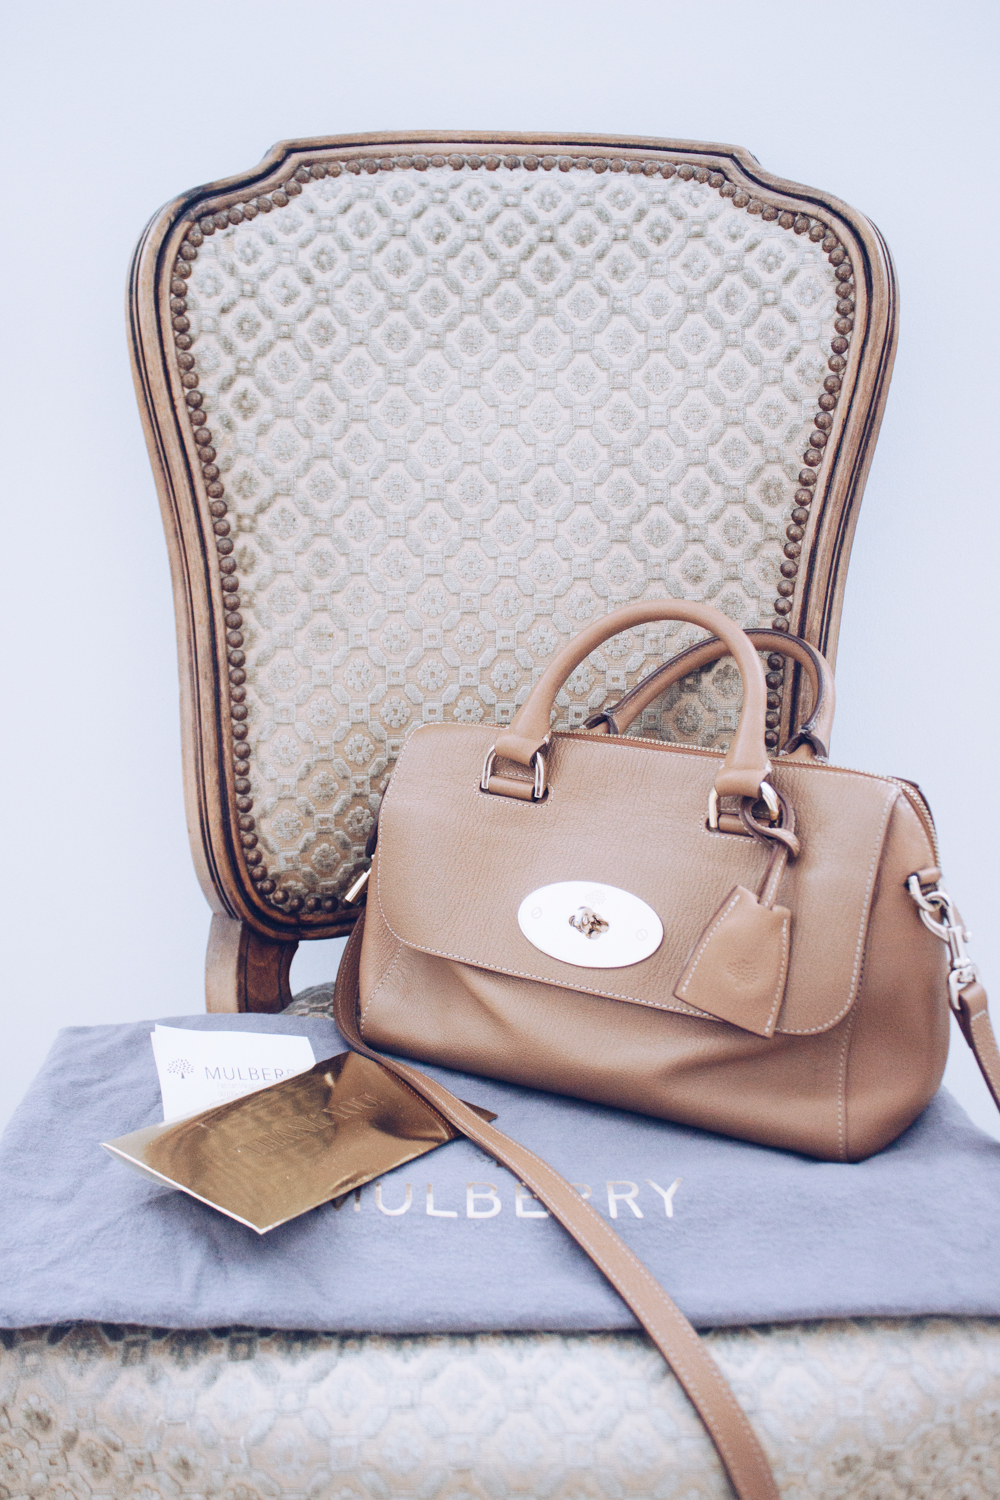 mulberry del rey for sale-8